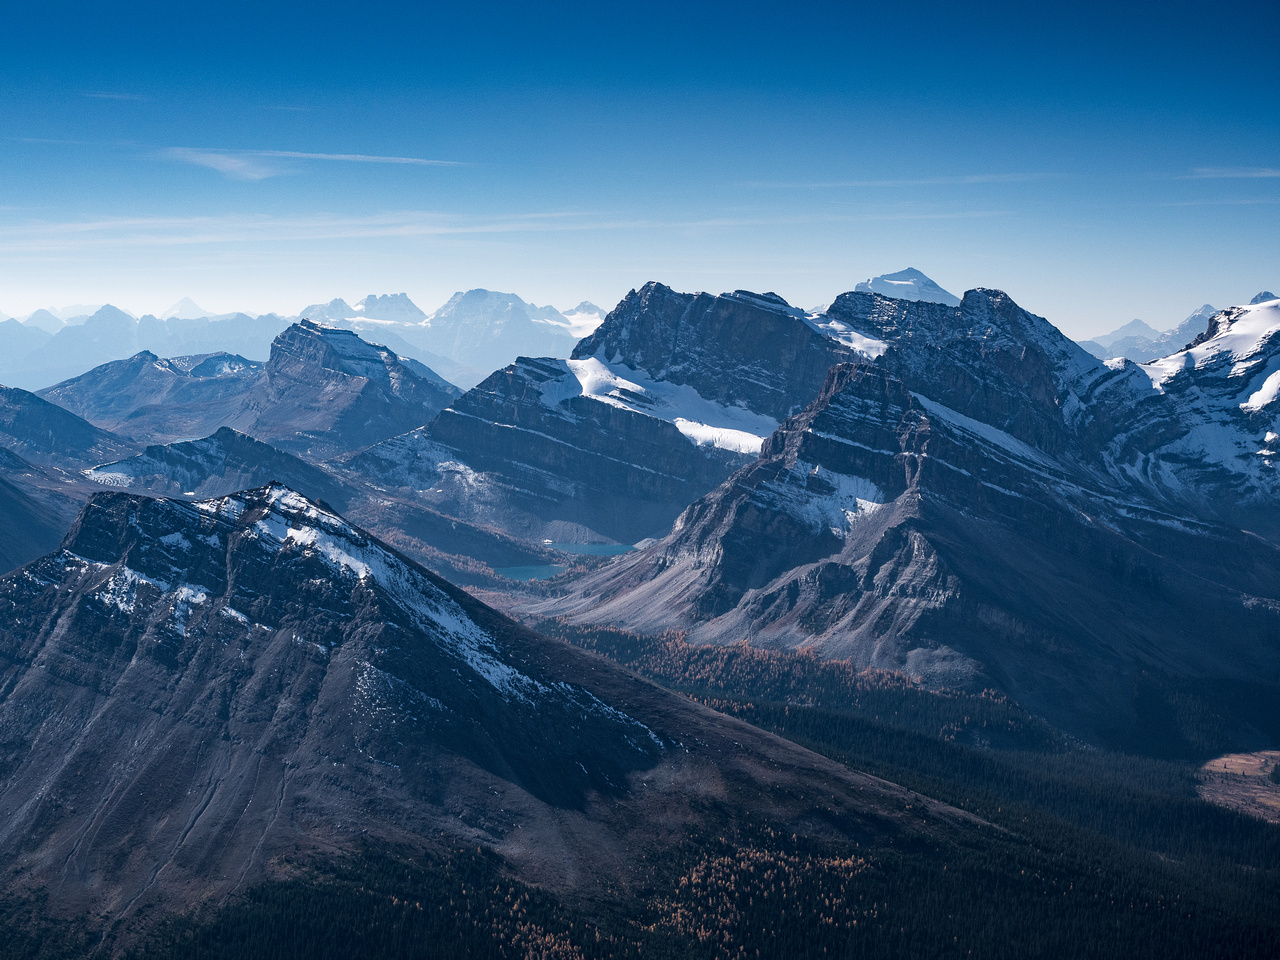 Looking over the Skoki Lakes towards familiar Lake Louise peaks such as Bident and Quadra at left and Temple